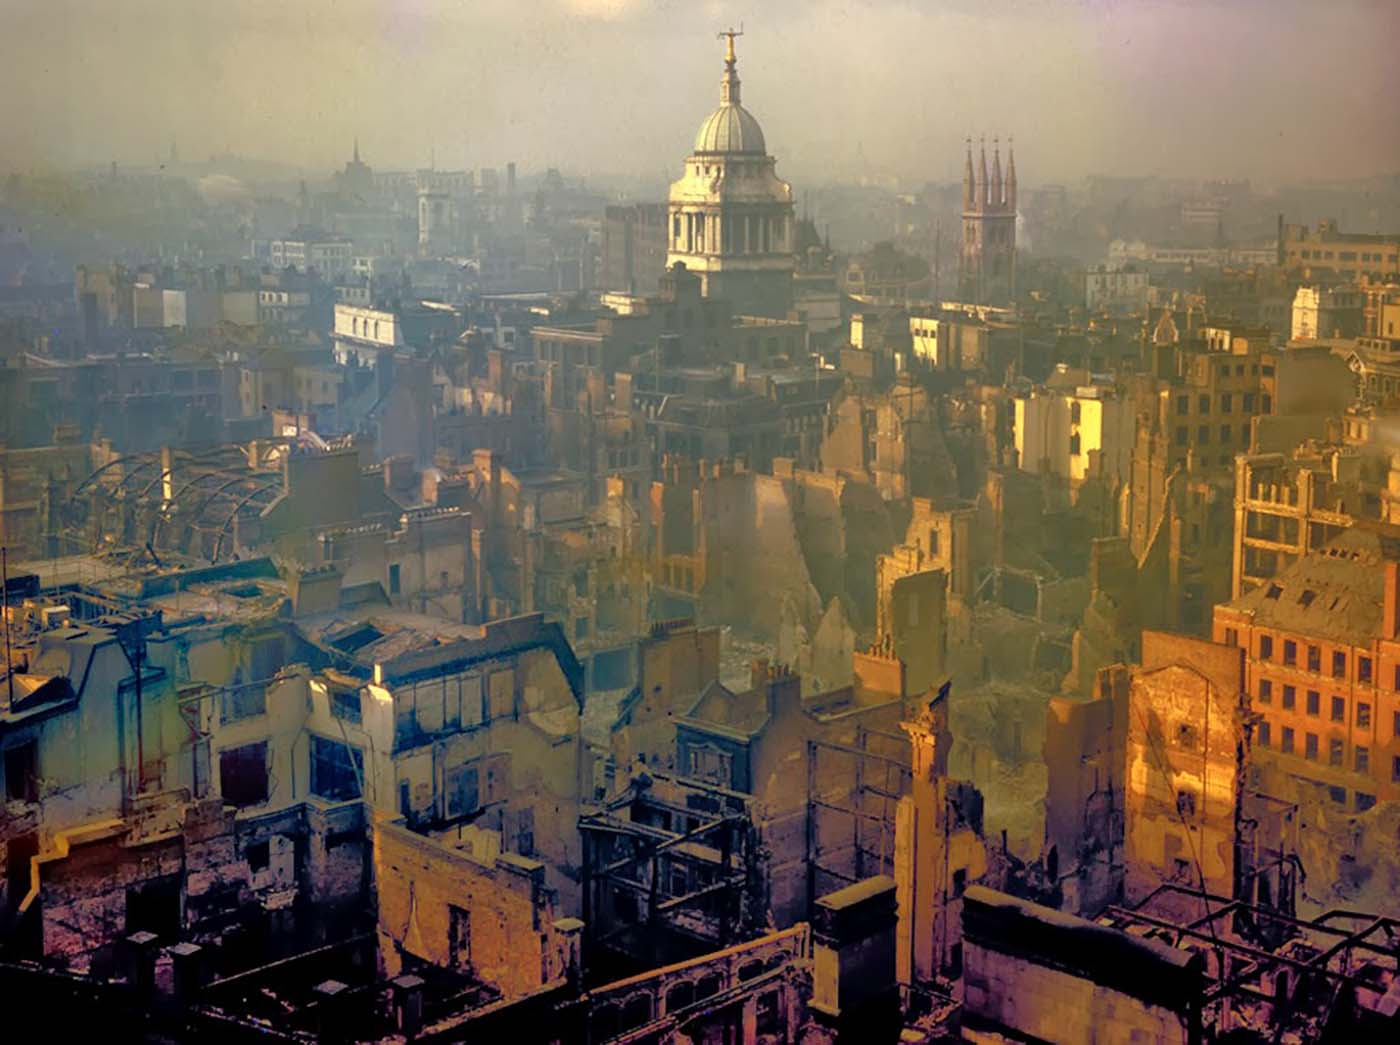 The spire of the Central Criminal Court - better known as the Old Bailey - rises defiantly while all around it buildings have become jagged shells in a landscape scarred by the relentless German bombings. 1940